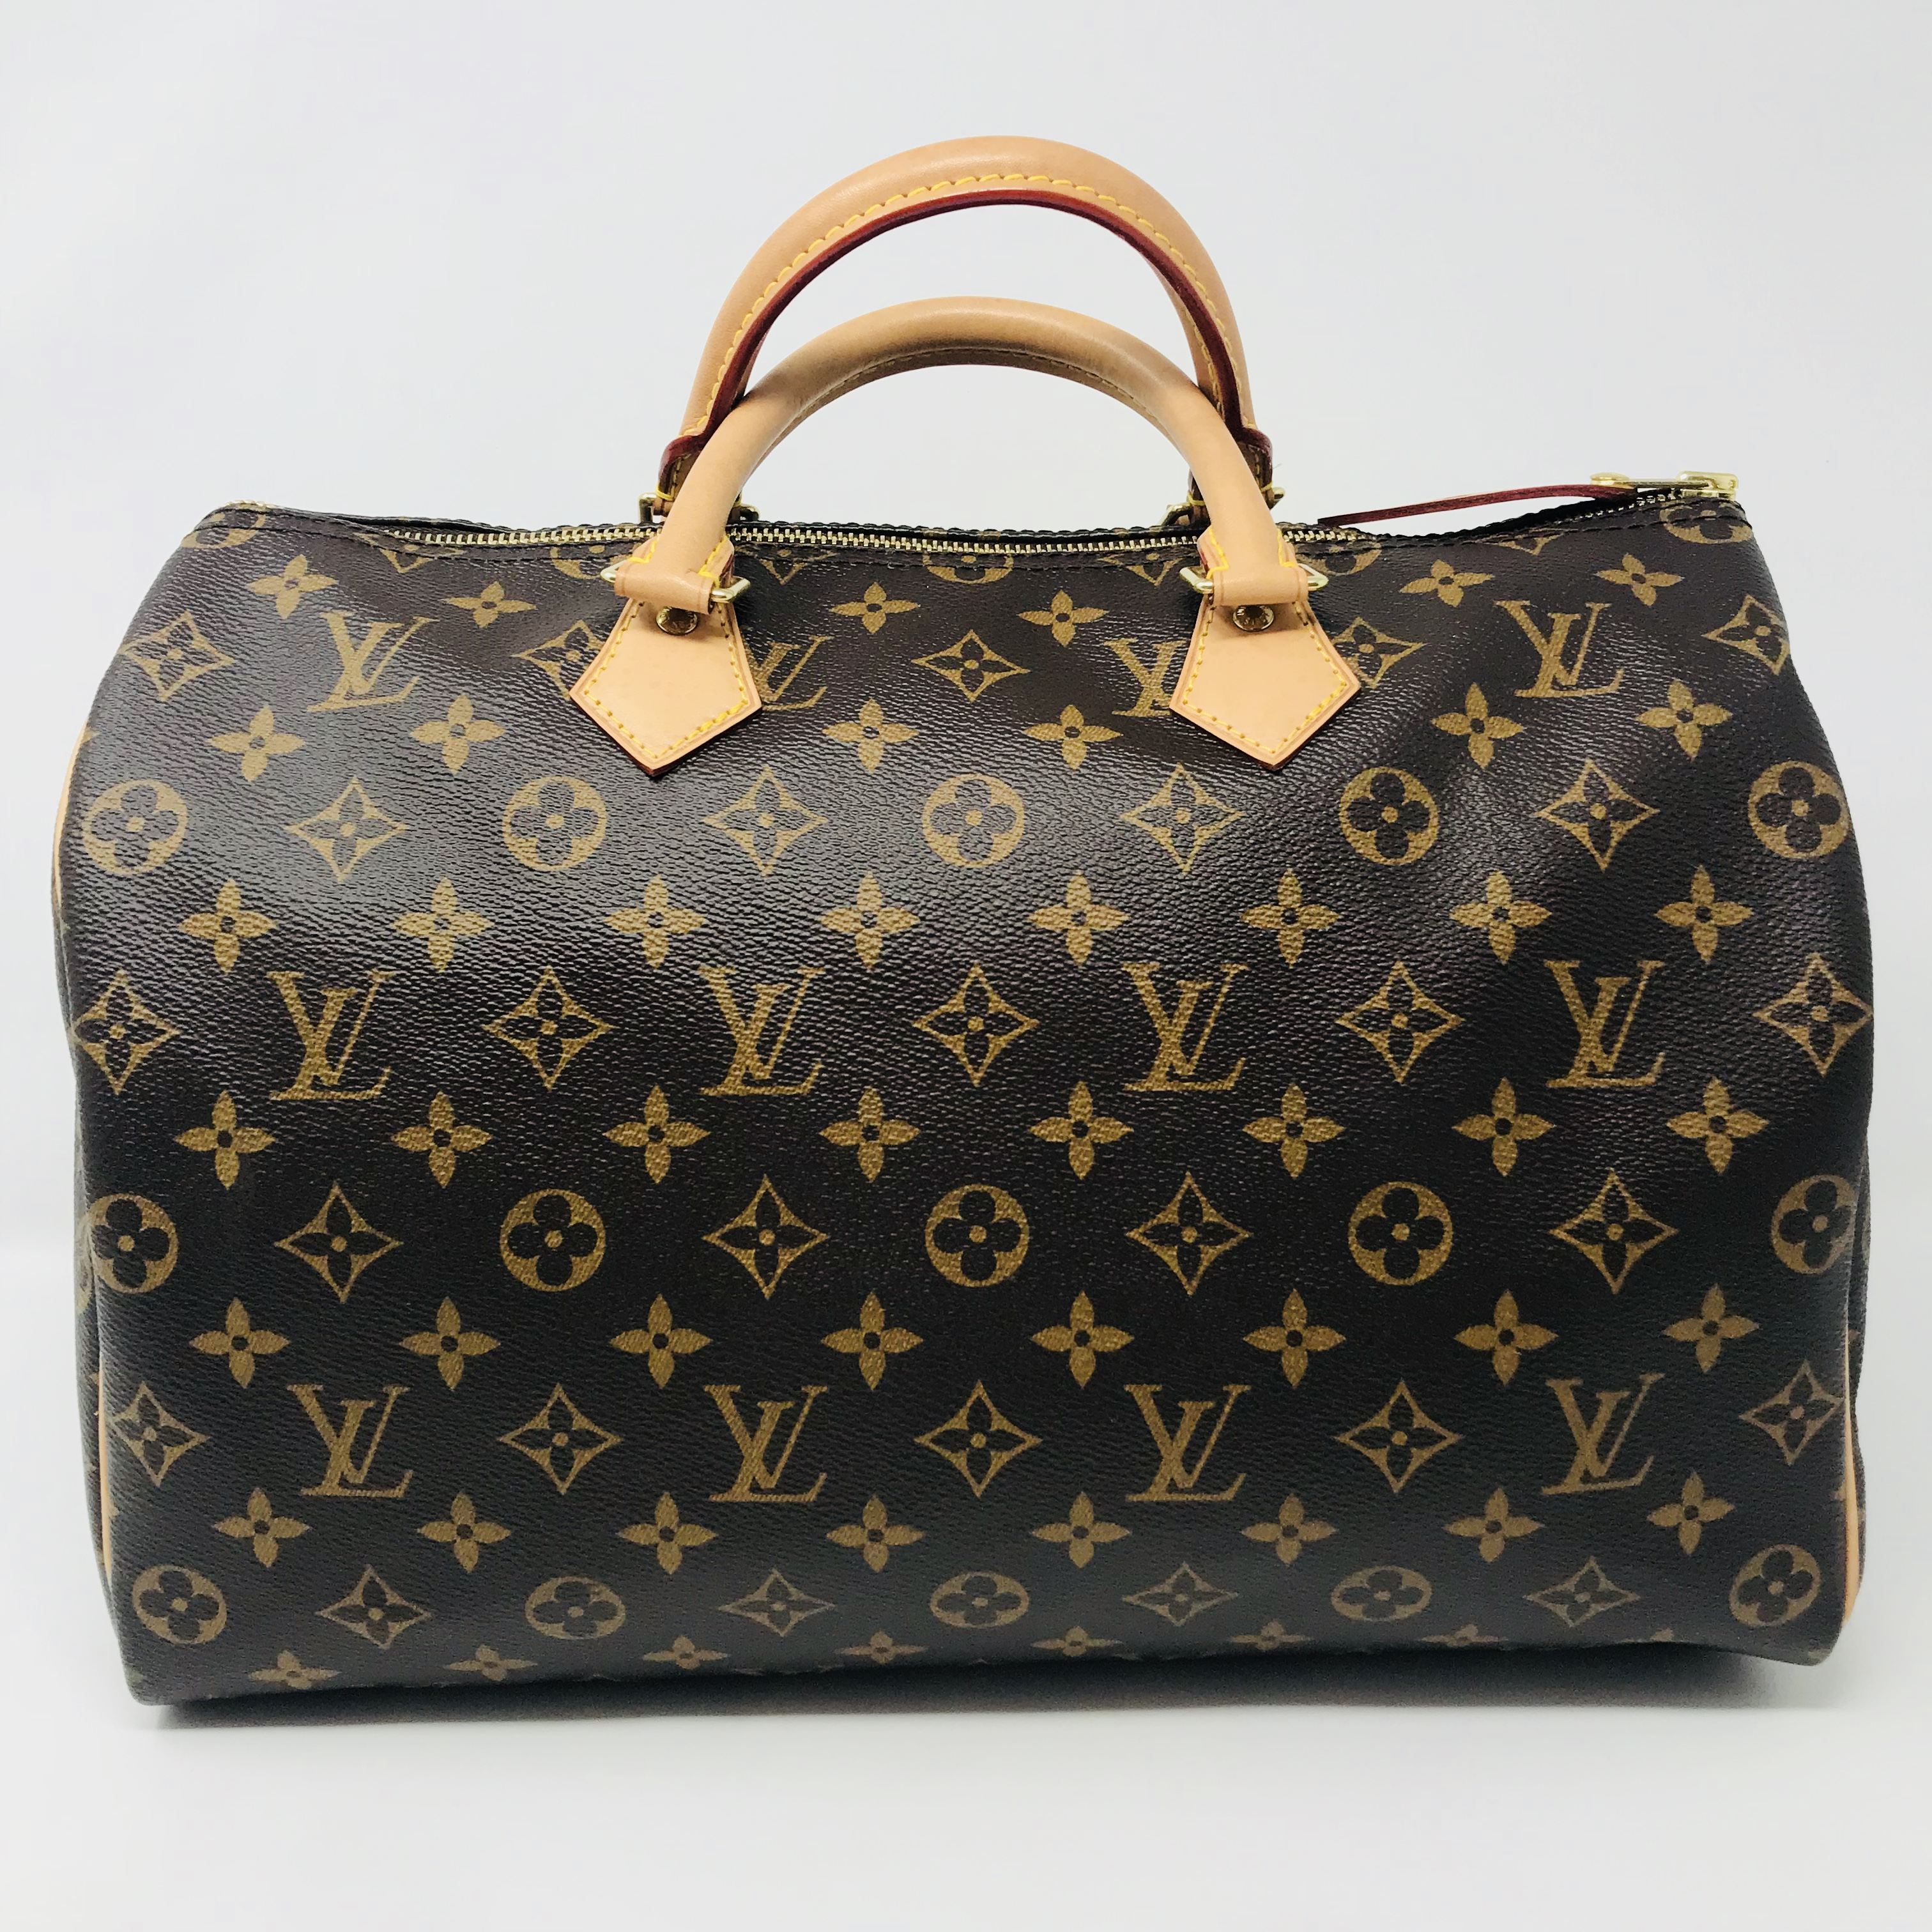 Louis Vuitton Purses, Handbags Price: $850.99